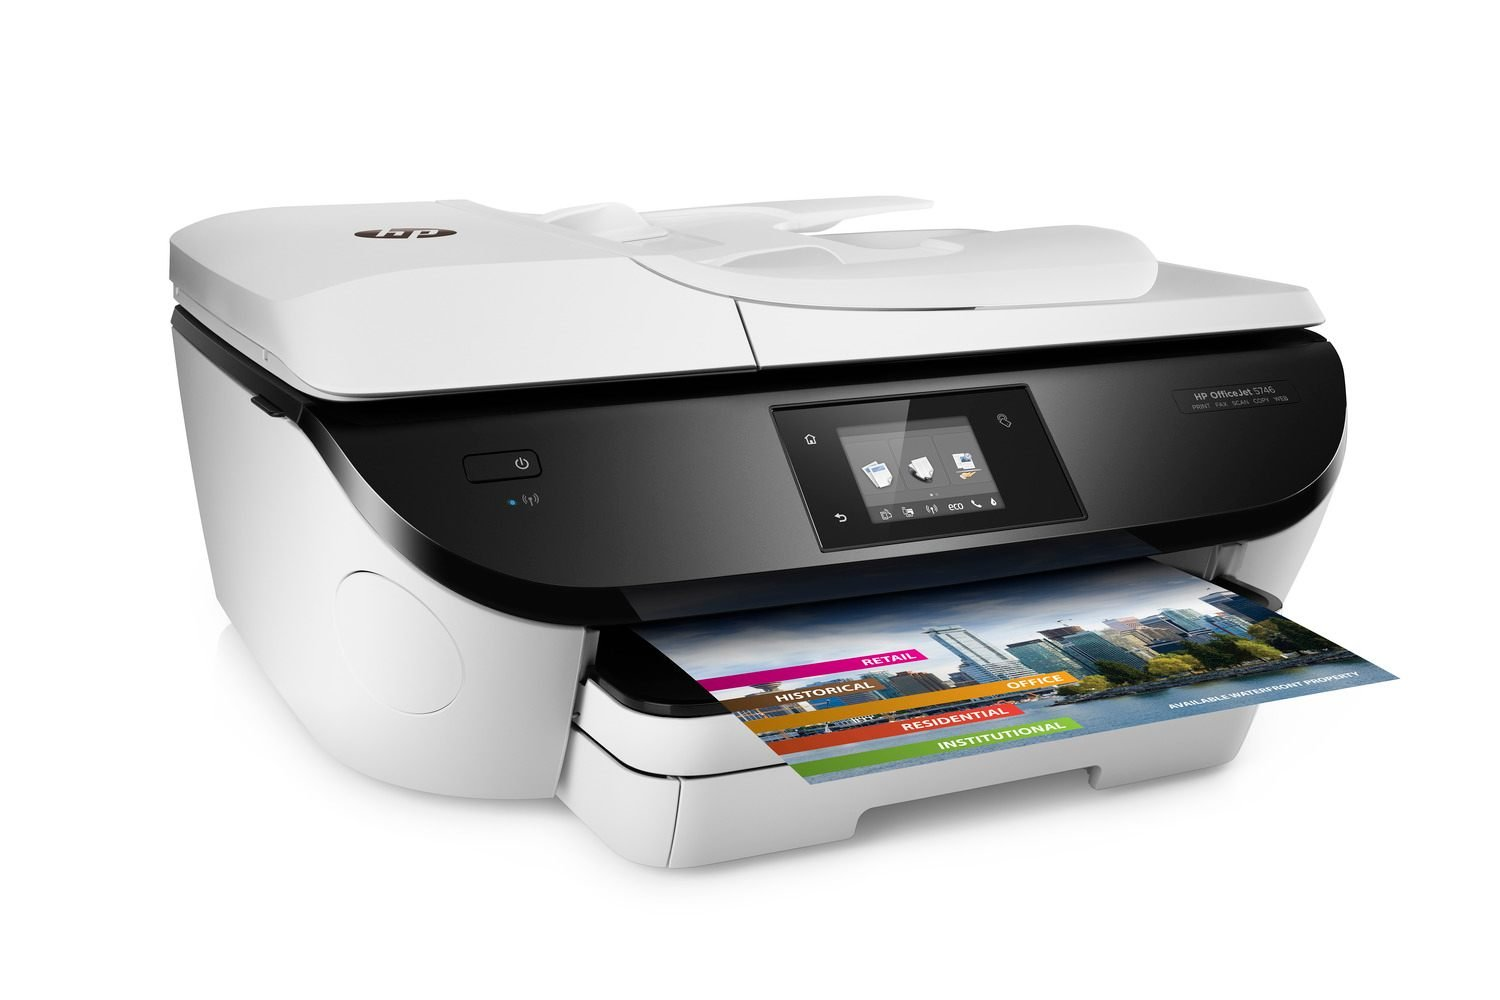 HP OfficeJet 5746 Wireless All-in-One Photo Printer with Mobile Printing in White (Renewed) by HP